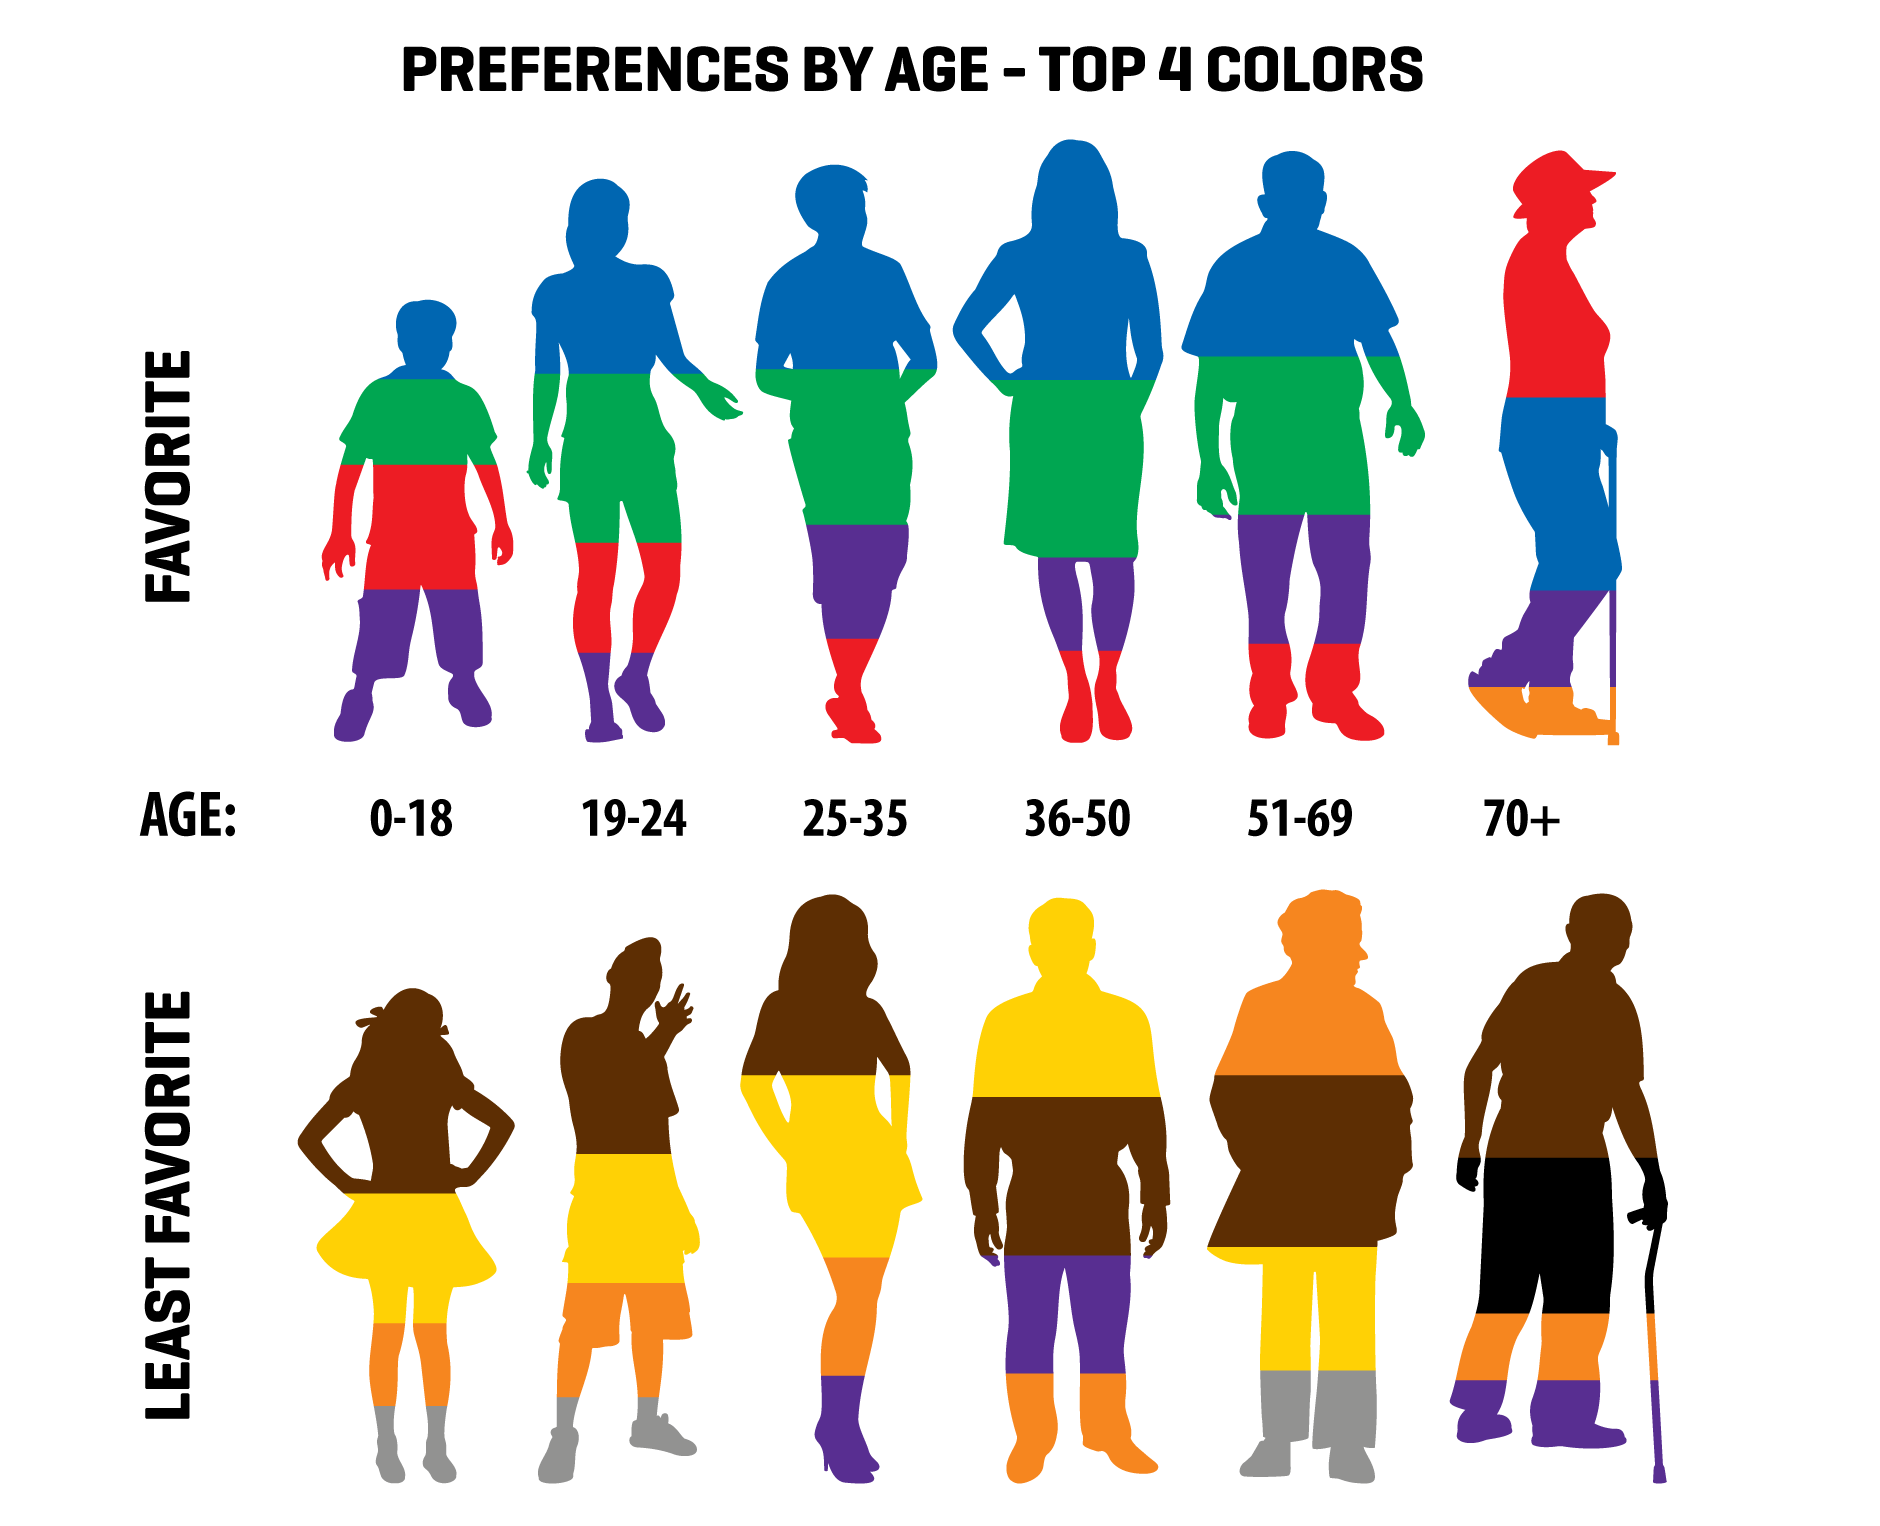 top 4 favorite colors by age